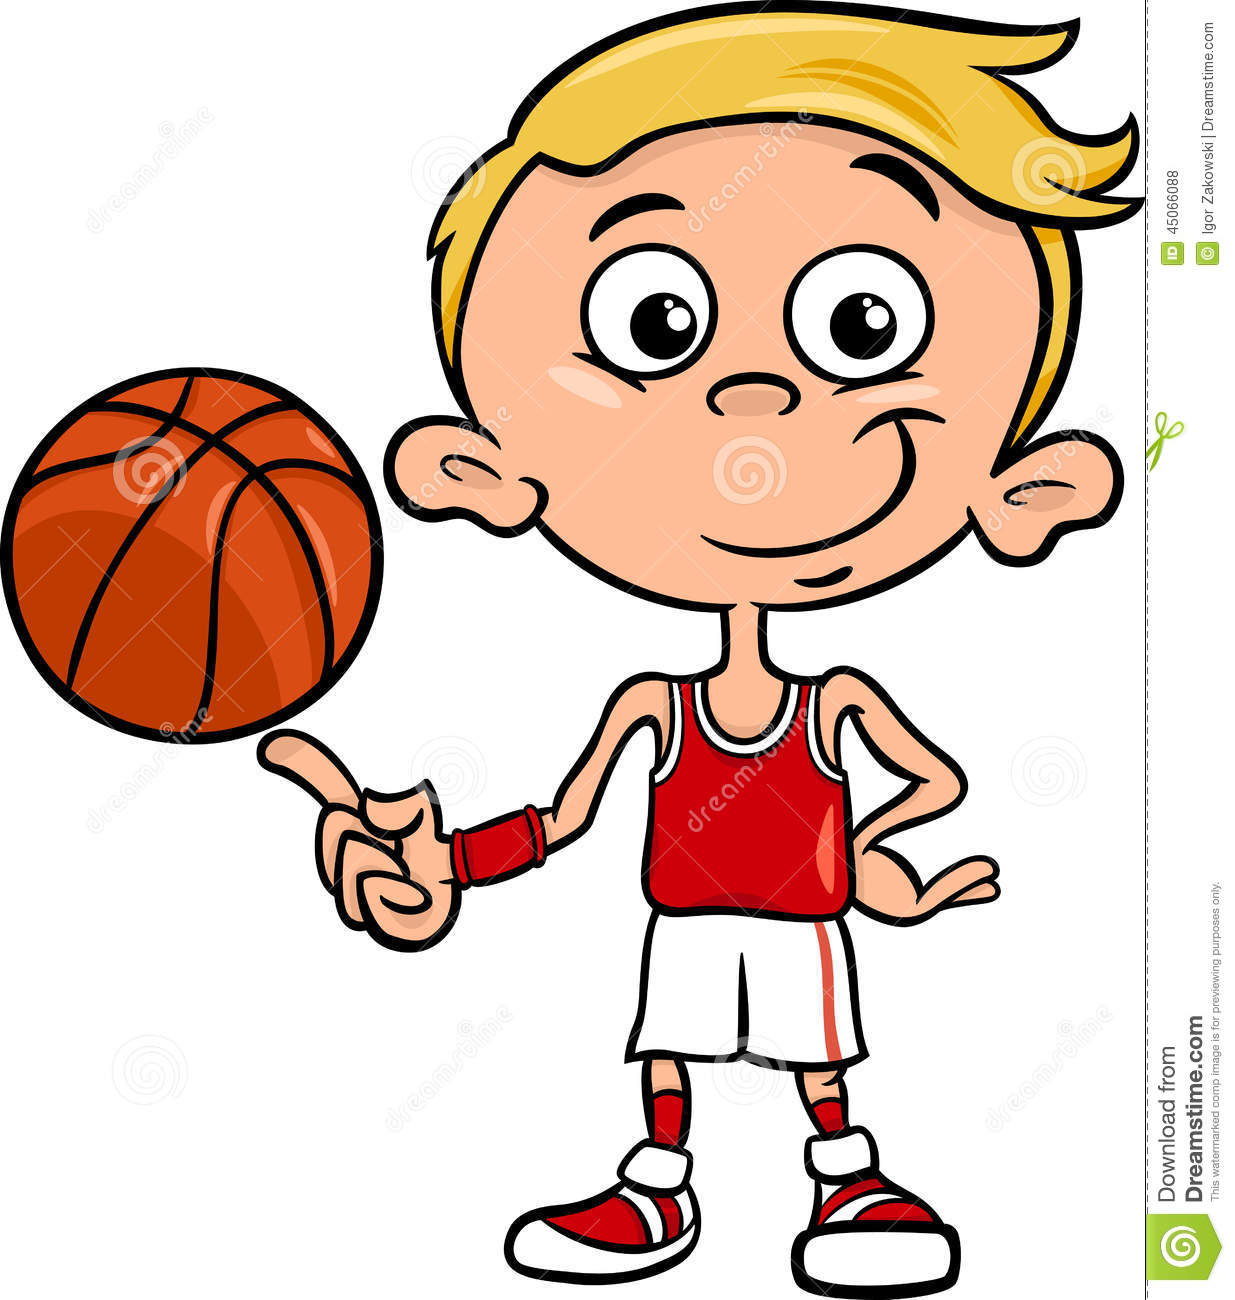 Basketball Cartoon Images & Stock Pictures. Royalty Free ...